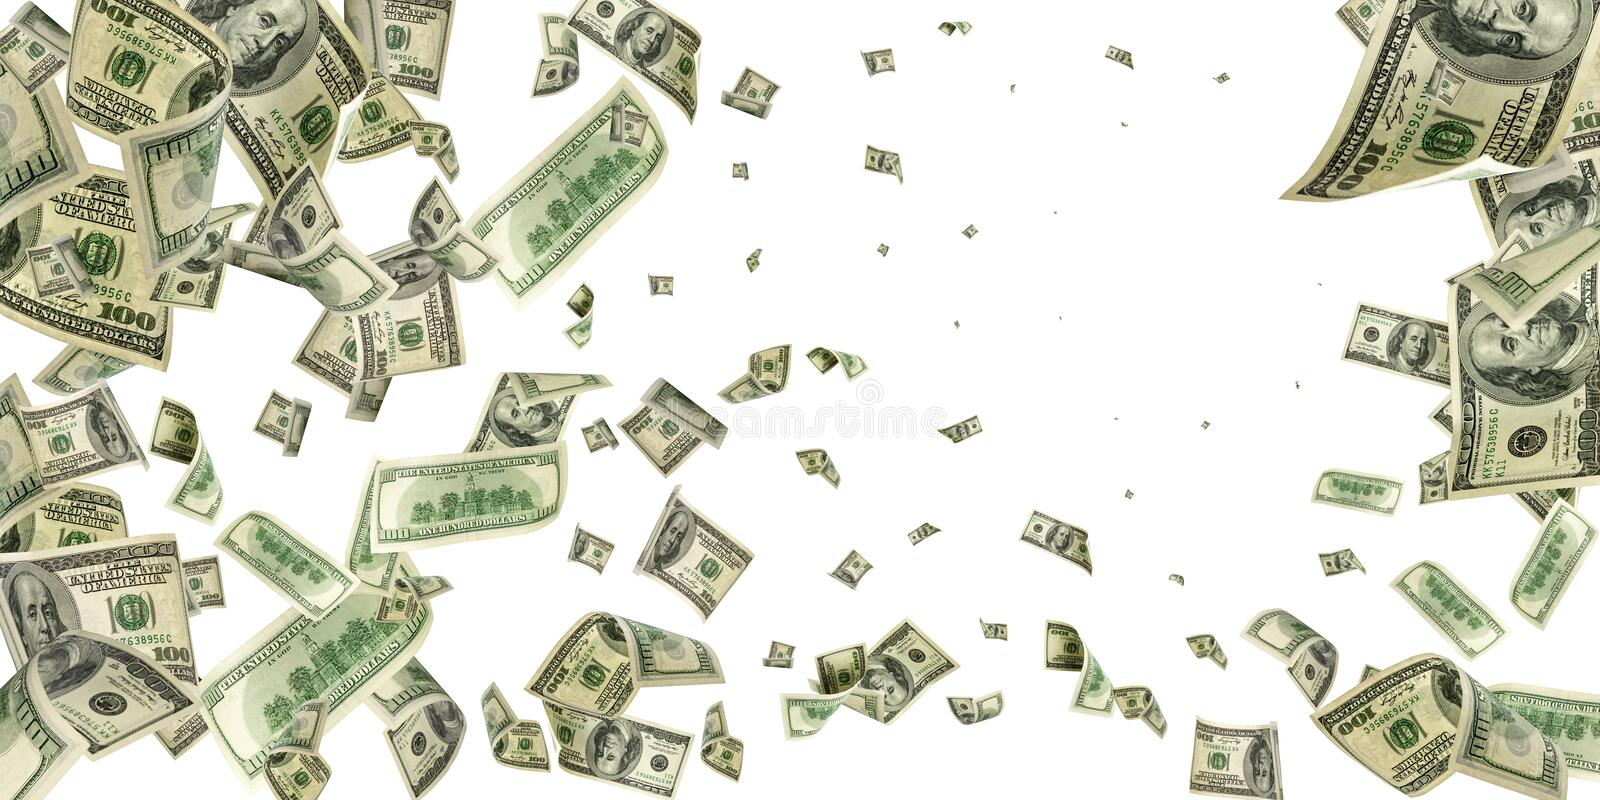 18 817 Money Falling Photos Free Royalty Free Stock Photos From Dreamstime All png & cliparts images on nicepng are best quality. 18 817 money falling photos free